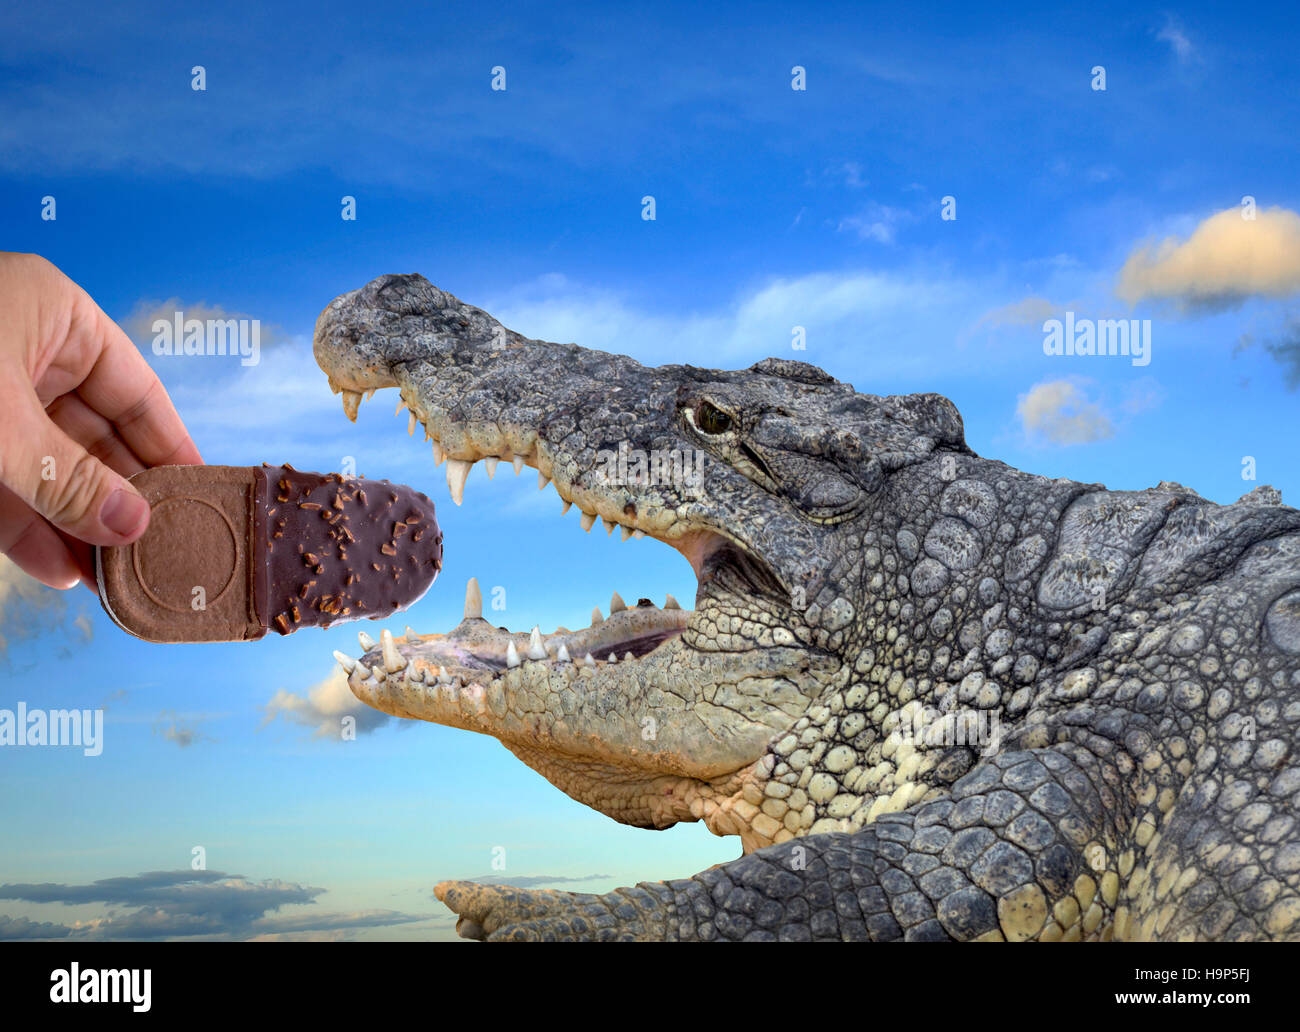 Giving hand with an ice cream eating a crocodile, conceptual would publicize - Stock Image